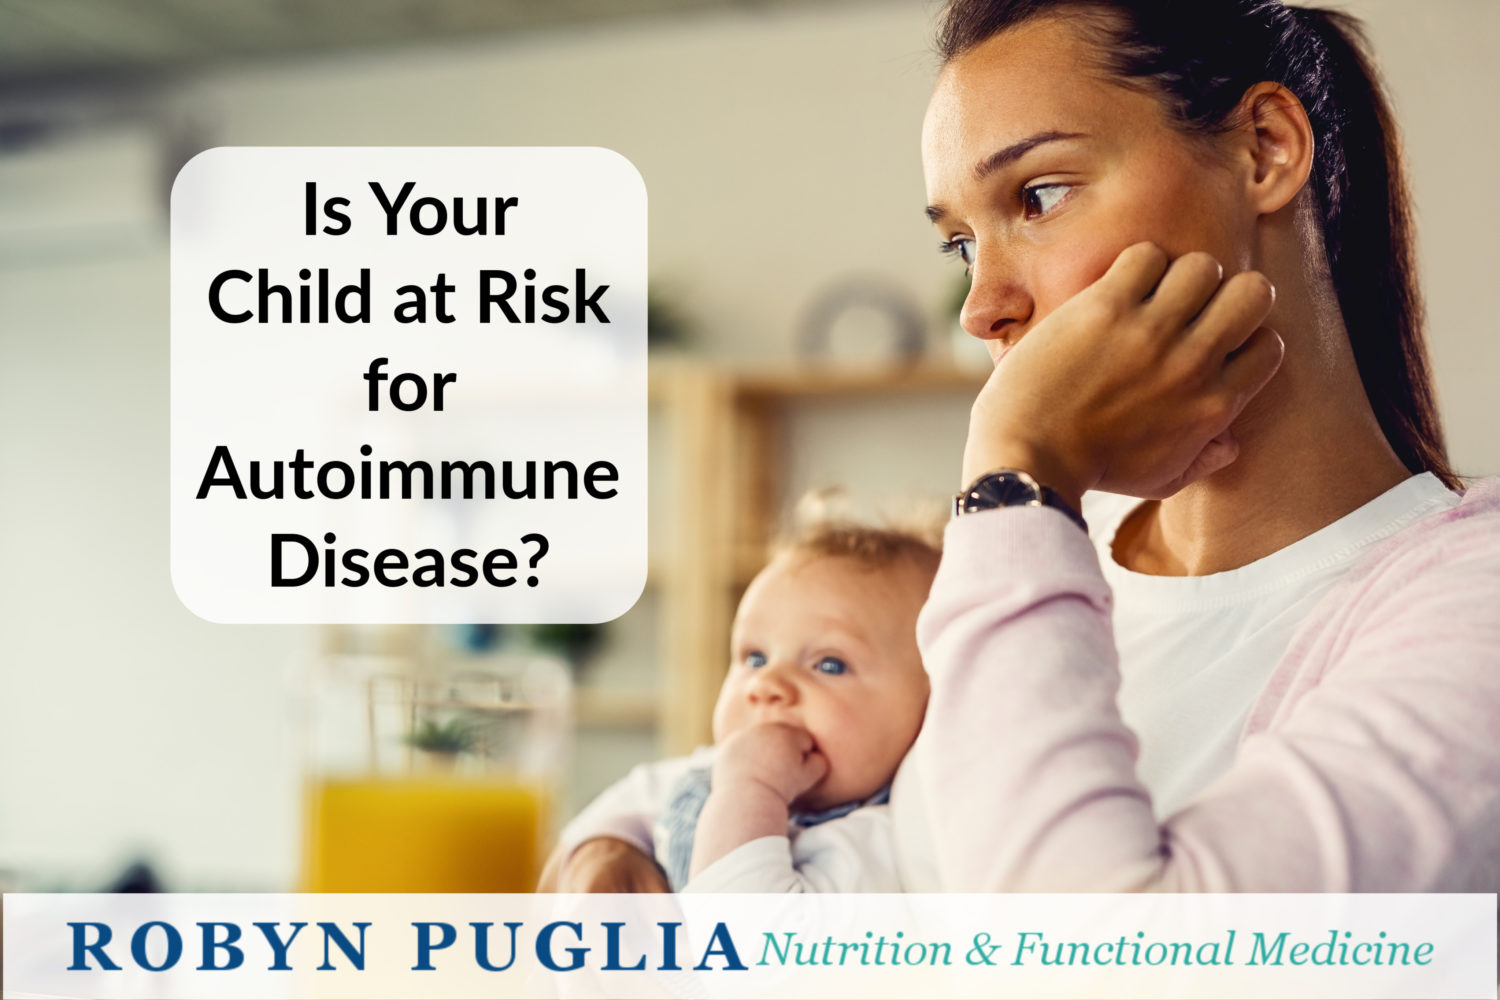 Is your child at risk for autoimmune disease?